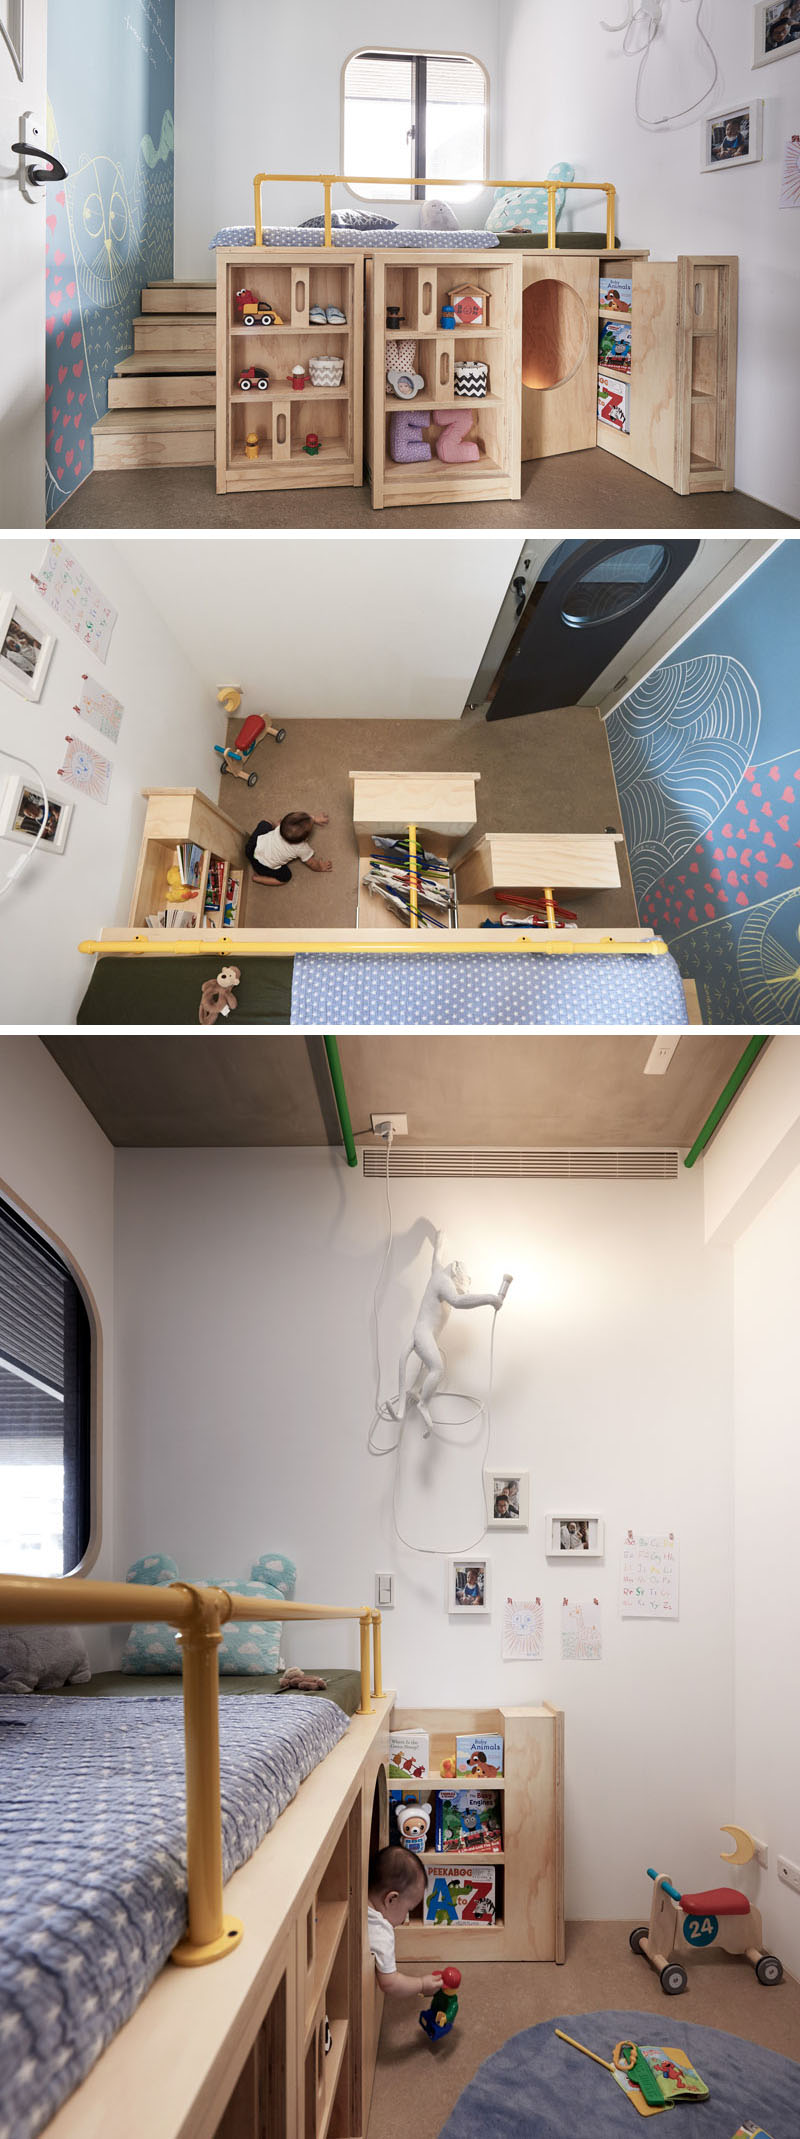 custom-kids-bed-with-storage-hidden-play-room-010318-1241-03 (4)